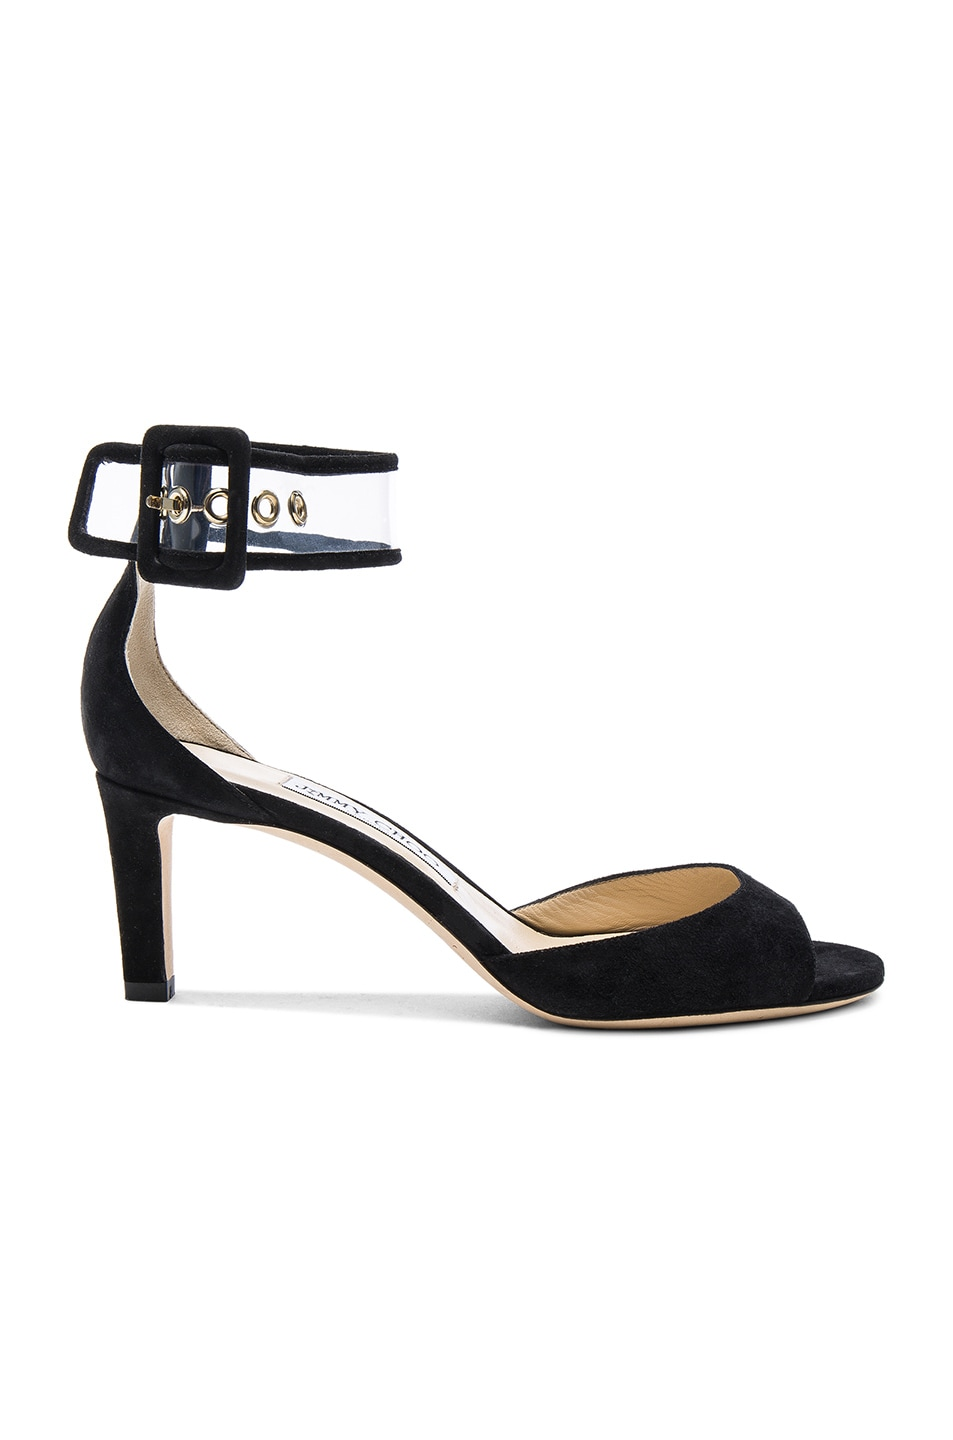 Image 1 of Jimmy Choo Moscow Heel in Black & Clear